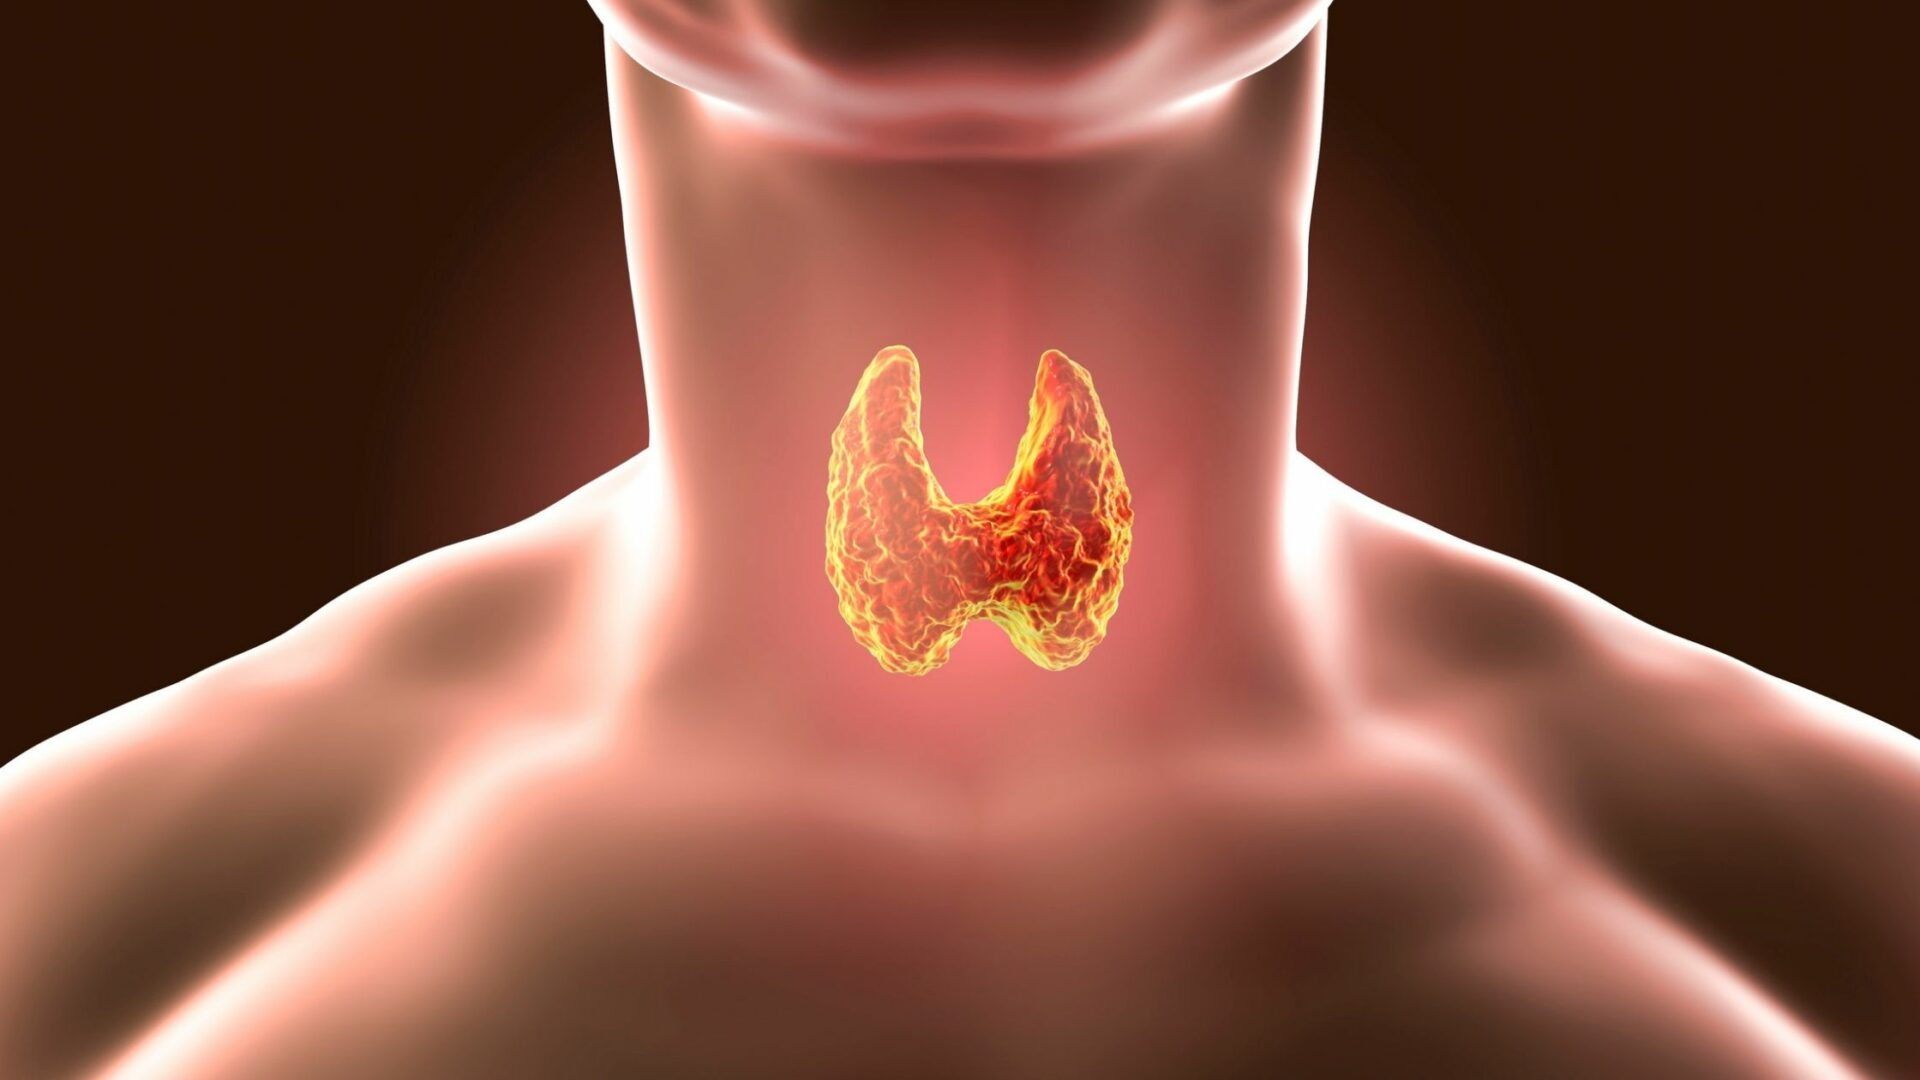 Is My Thyroid Making it Difficult to Lose Weight?